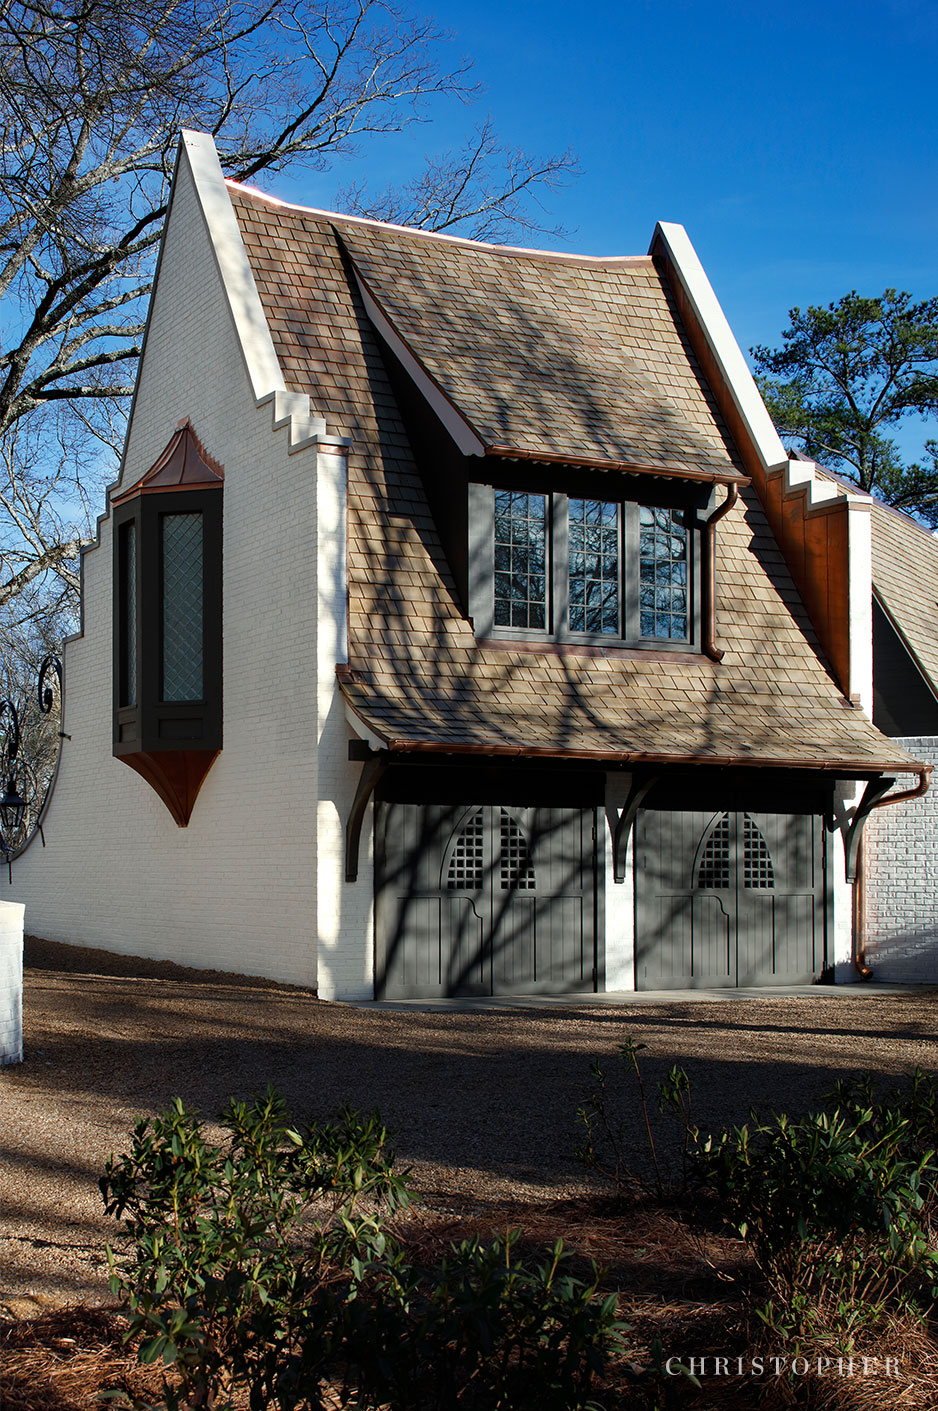 Transitional Estate - carriage house